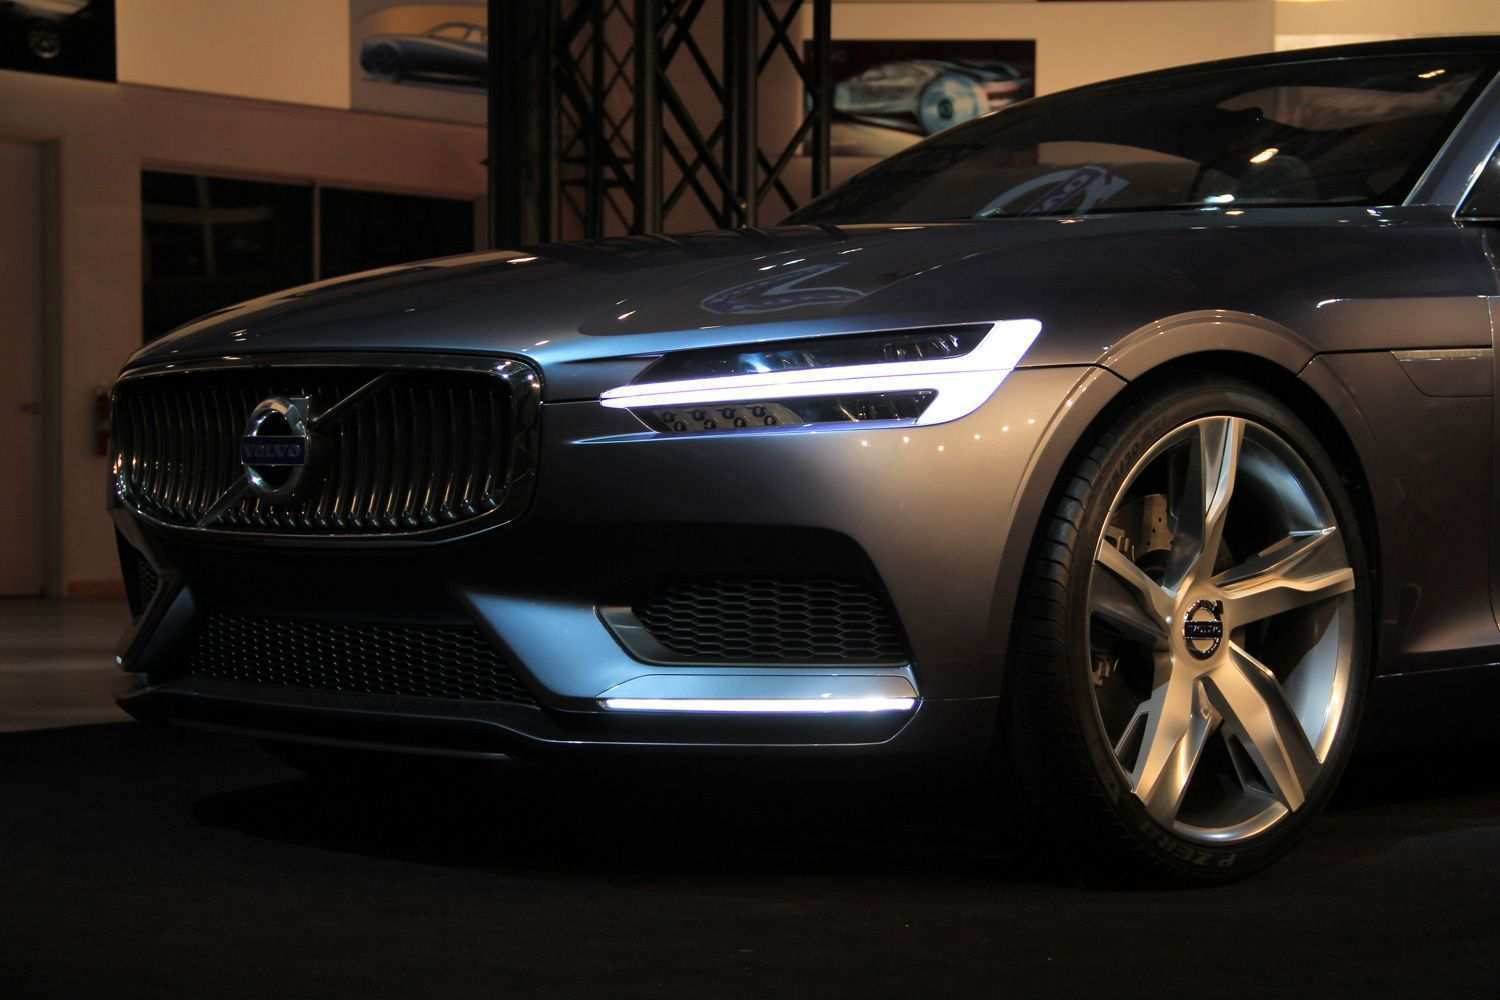 39 Gallery of Volvo 2020 Plan Release Date with Volvo 2020 Plan